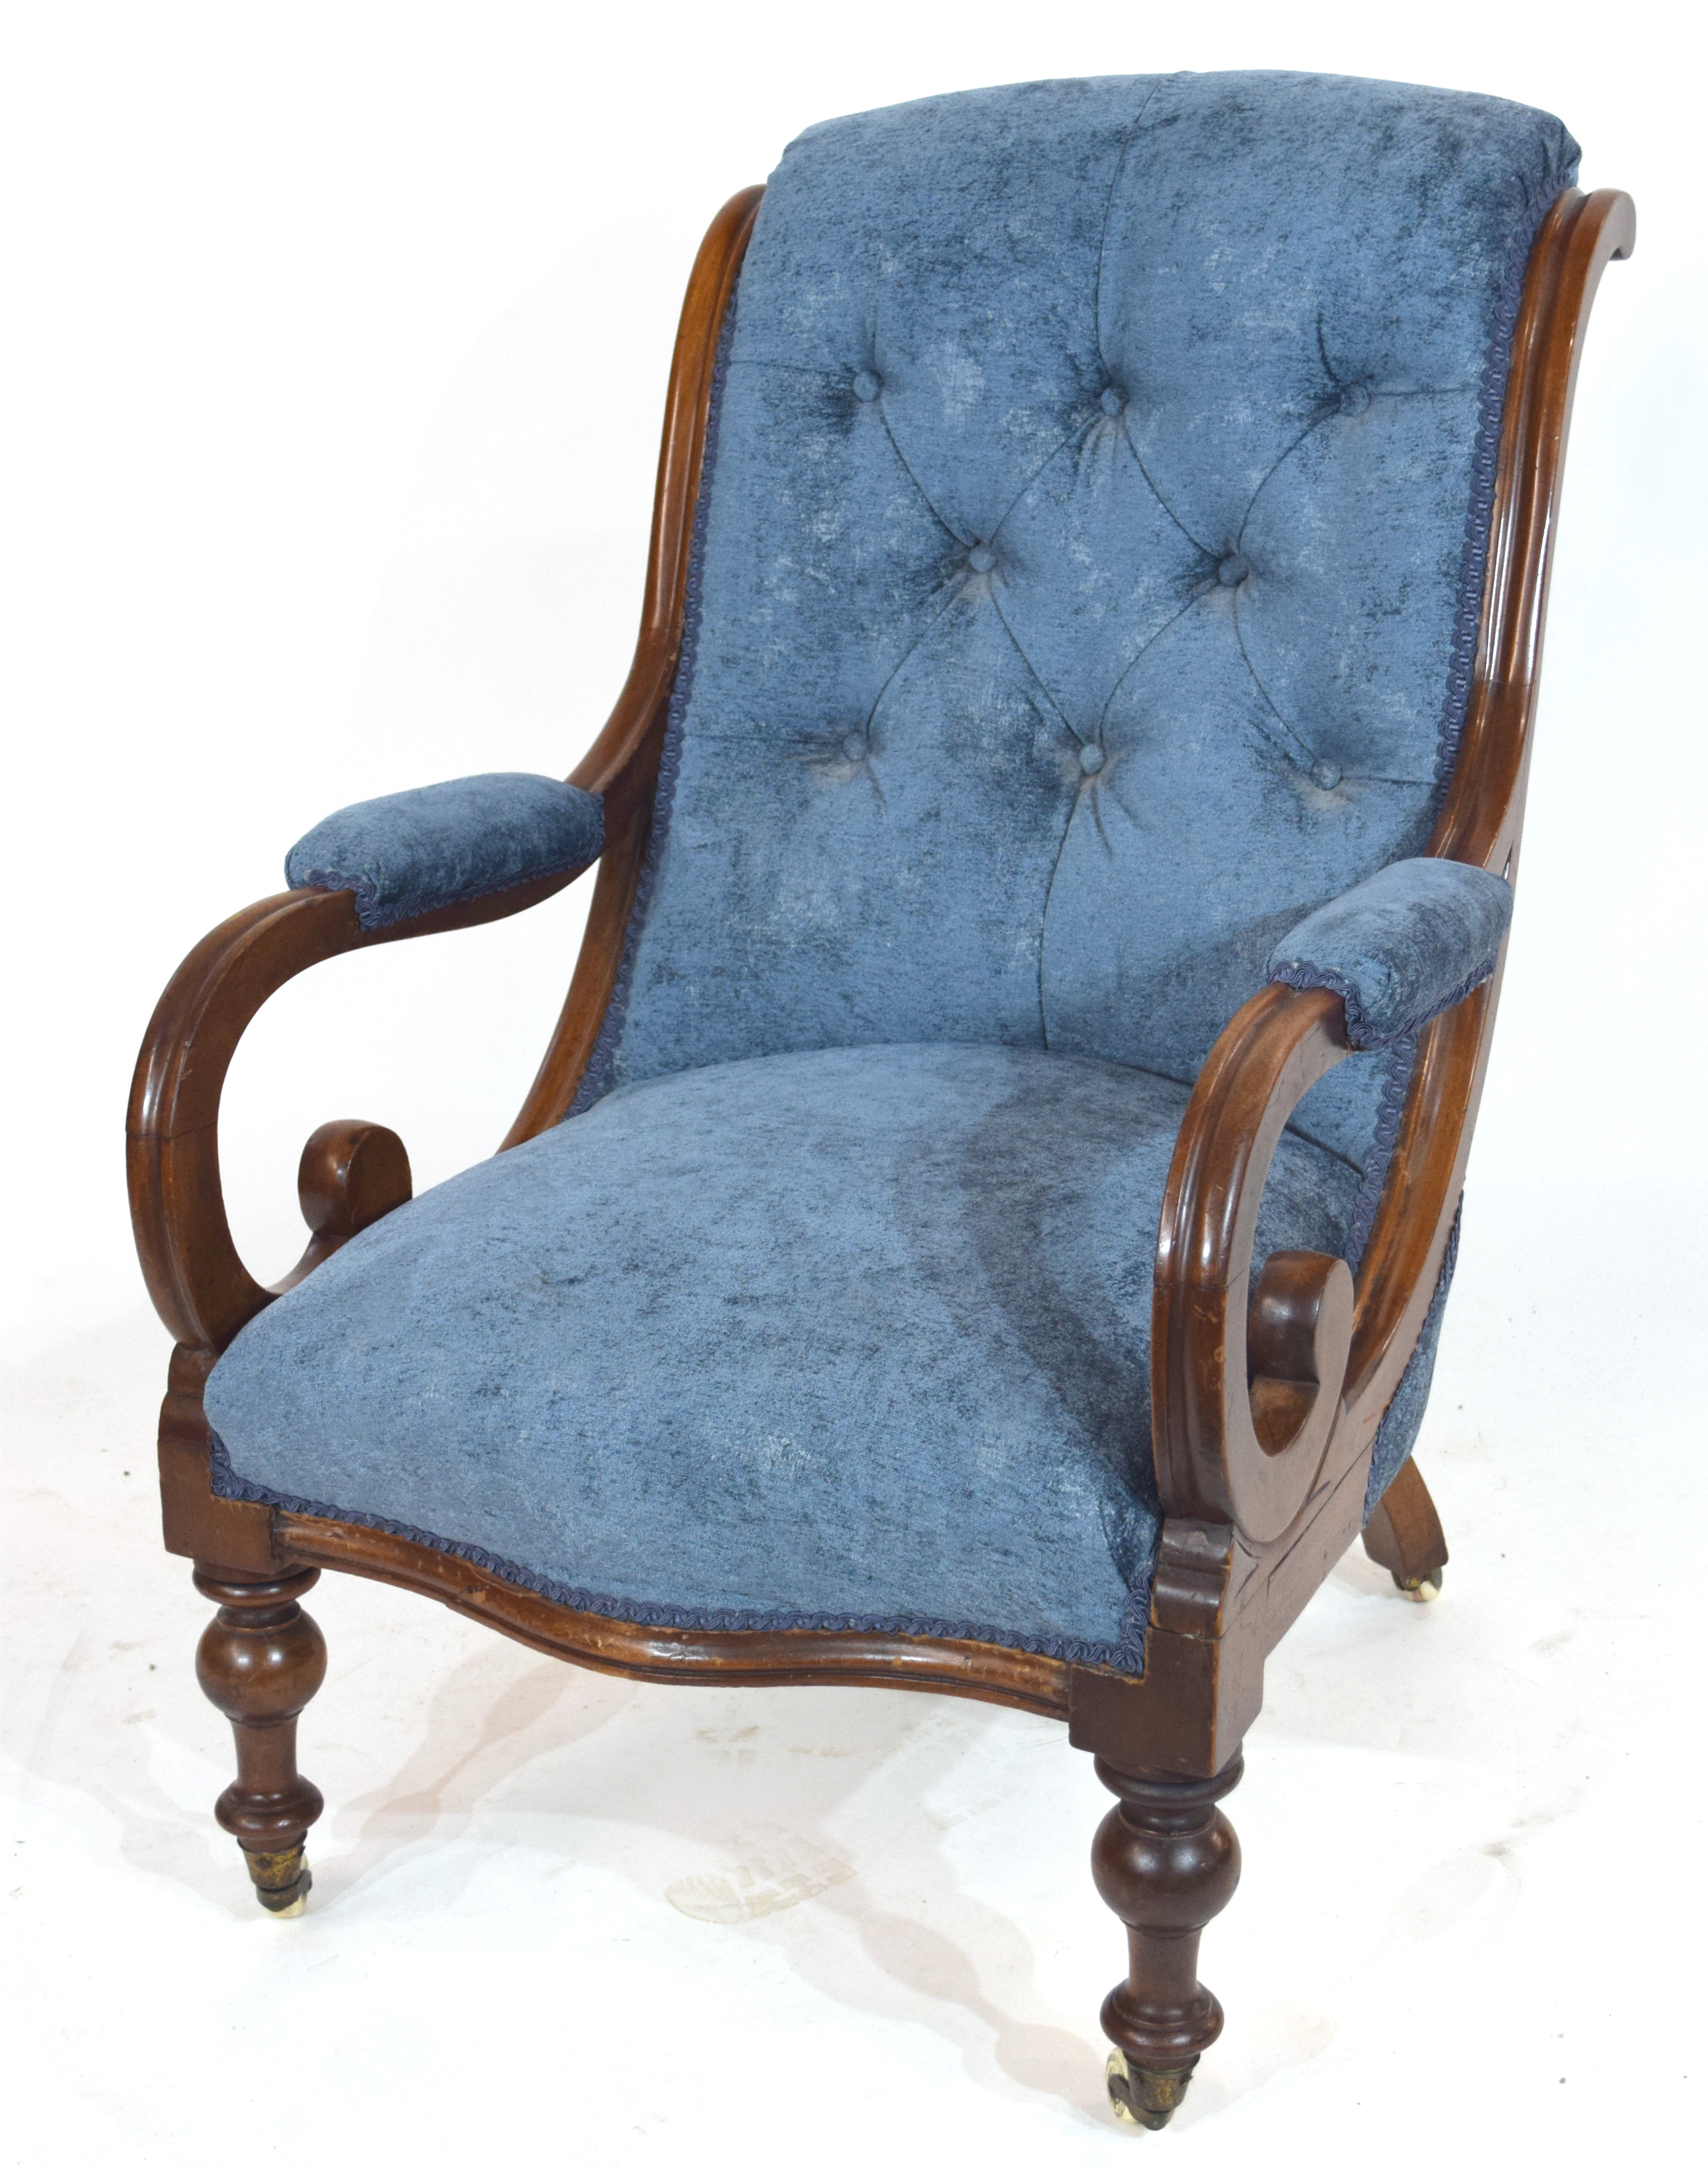 Victorian mahogany framed armchair with show wood frame, scrolled arms and turned front legs with